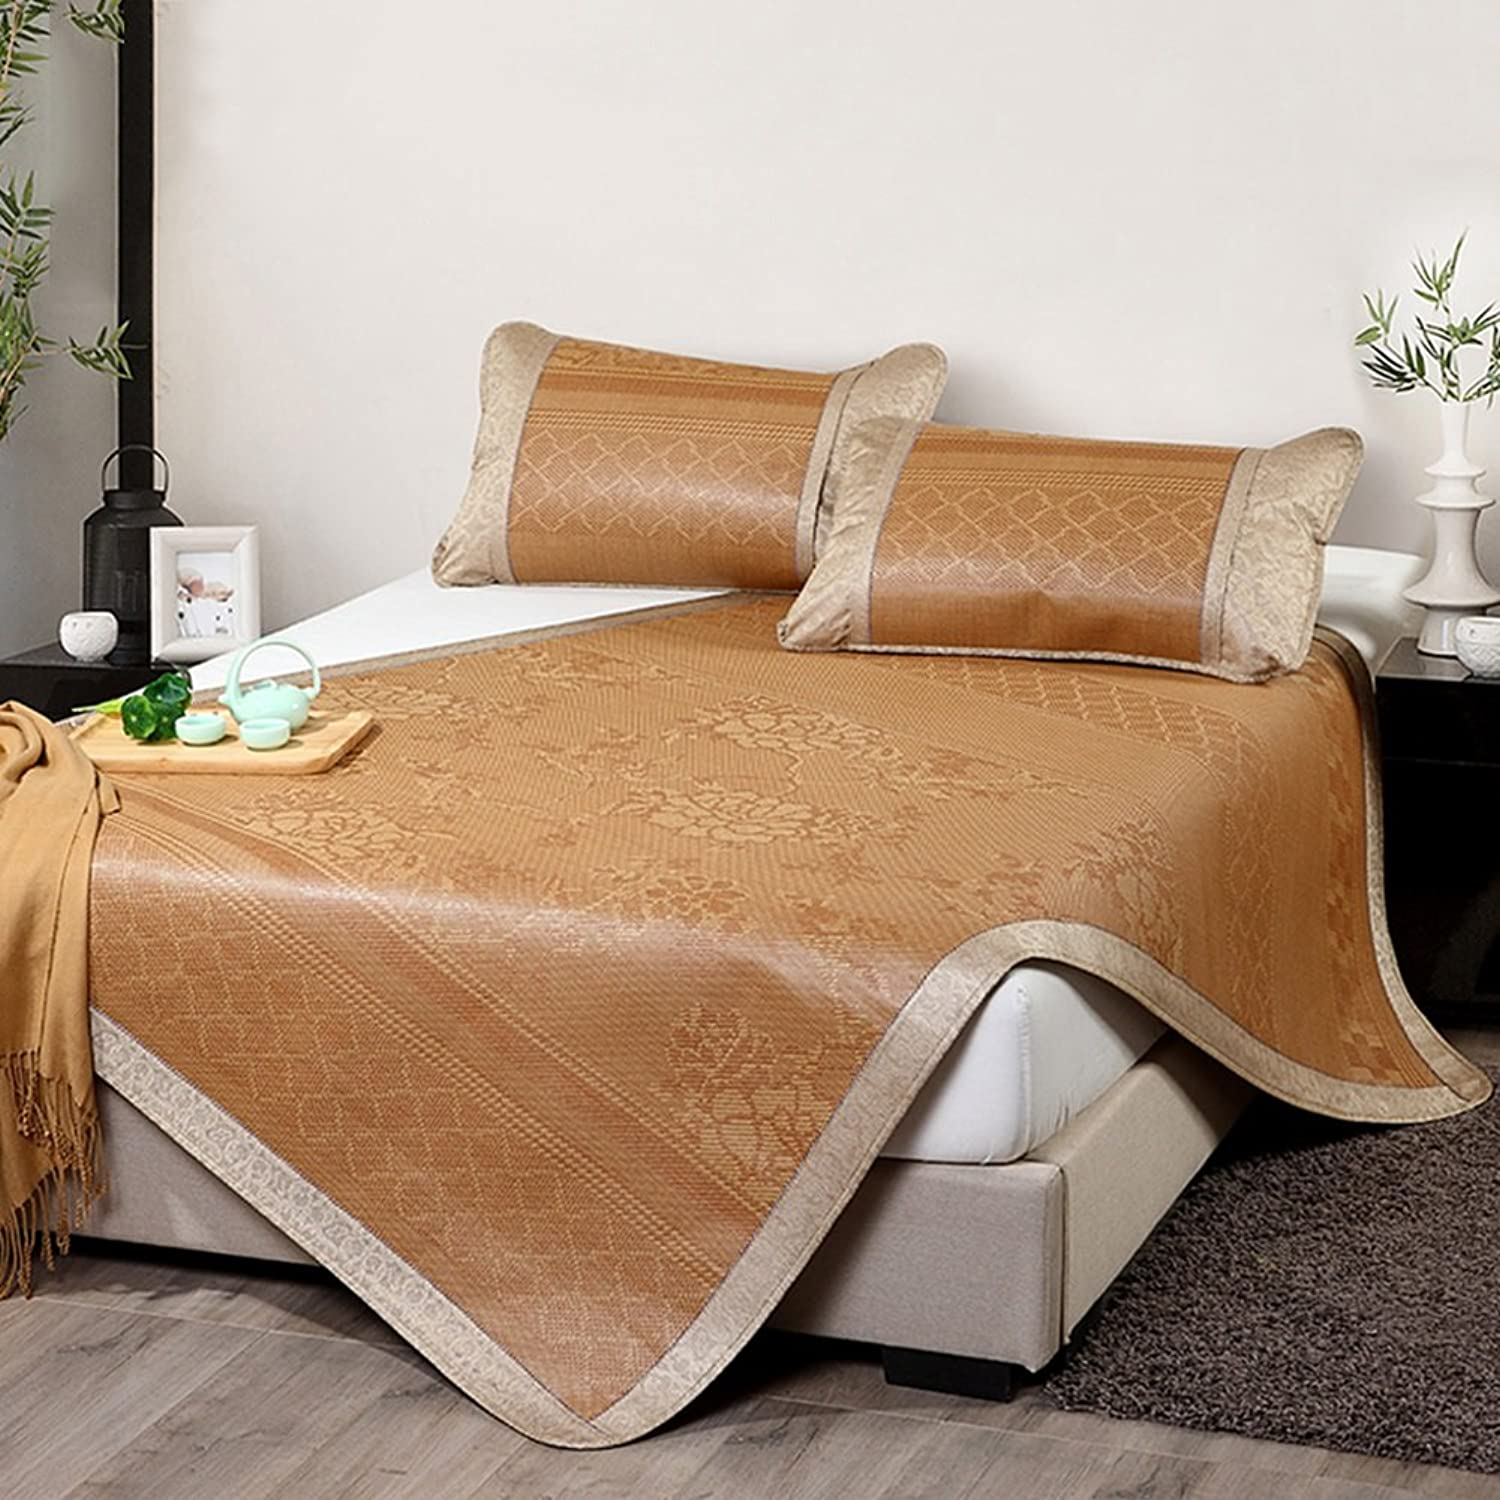 LIANGJUN Mattress Summer Sleeping Mat Rattan Woven Collapsible Cooling Comfortable Breathable Bedding Double Bed Single Bedroom Dormitory, 4 Sizes, 3 Types (color   3 -120X195cm)